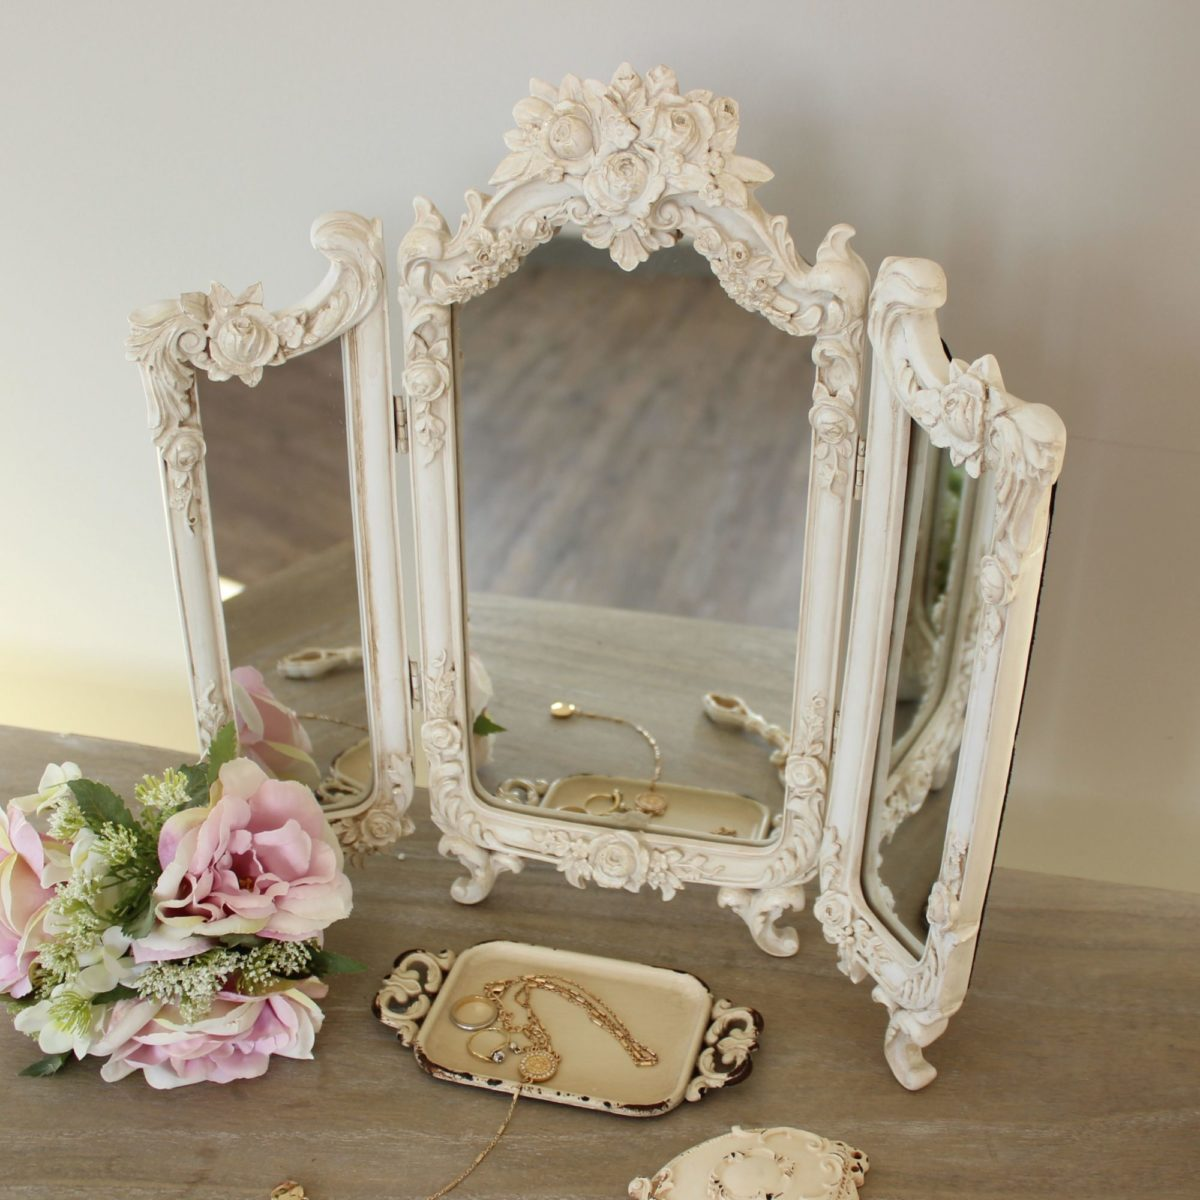 20melody-maison_ornate-rose-triple-mirror-1200x1200.jpg